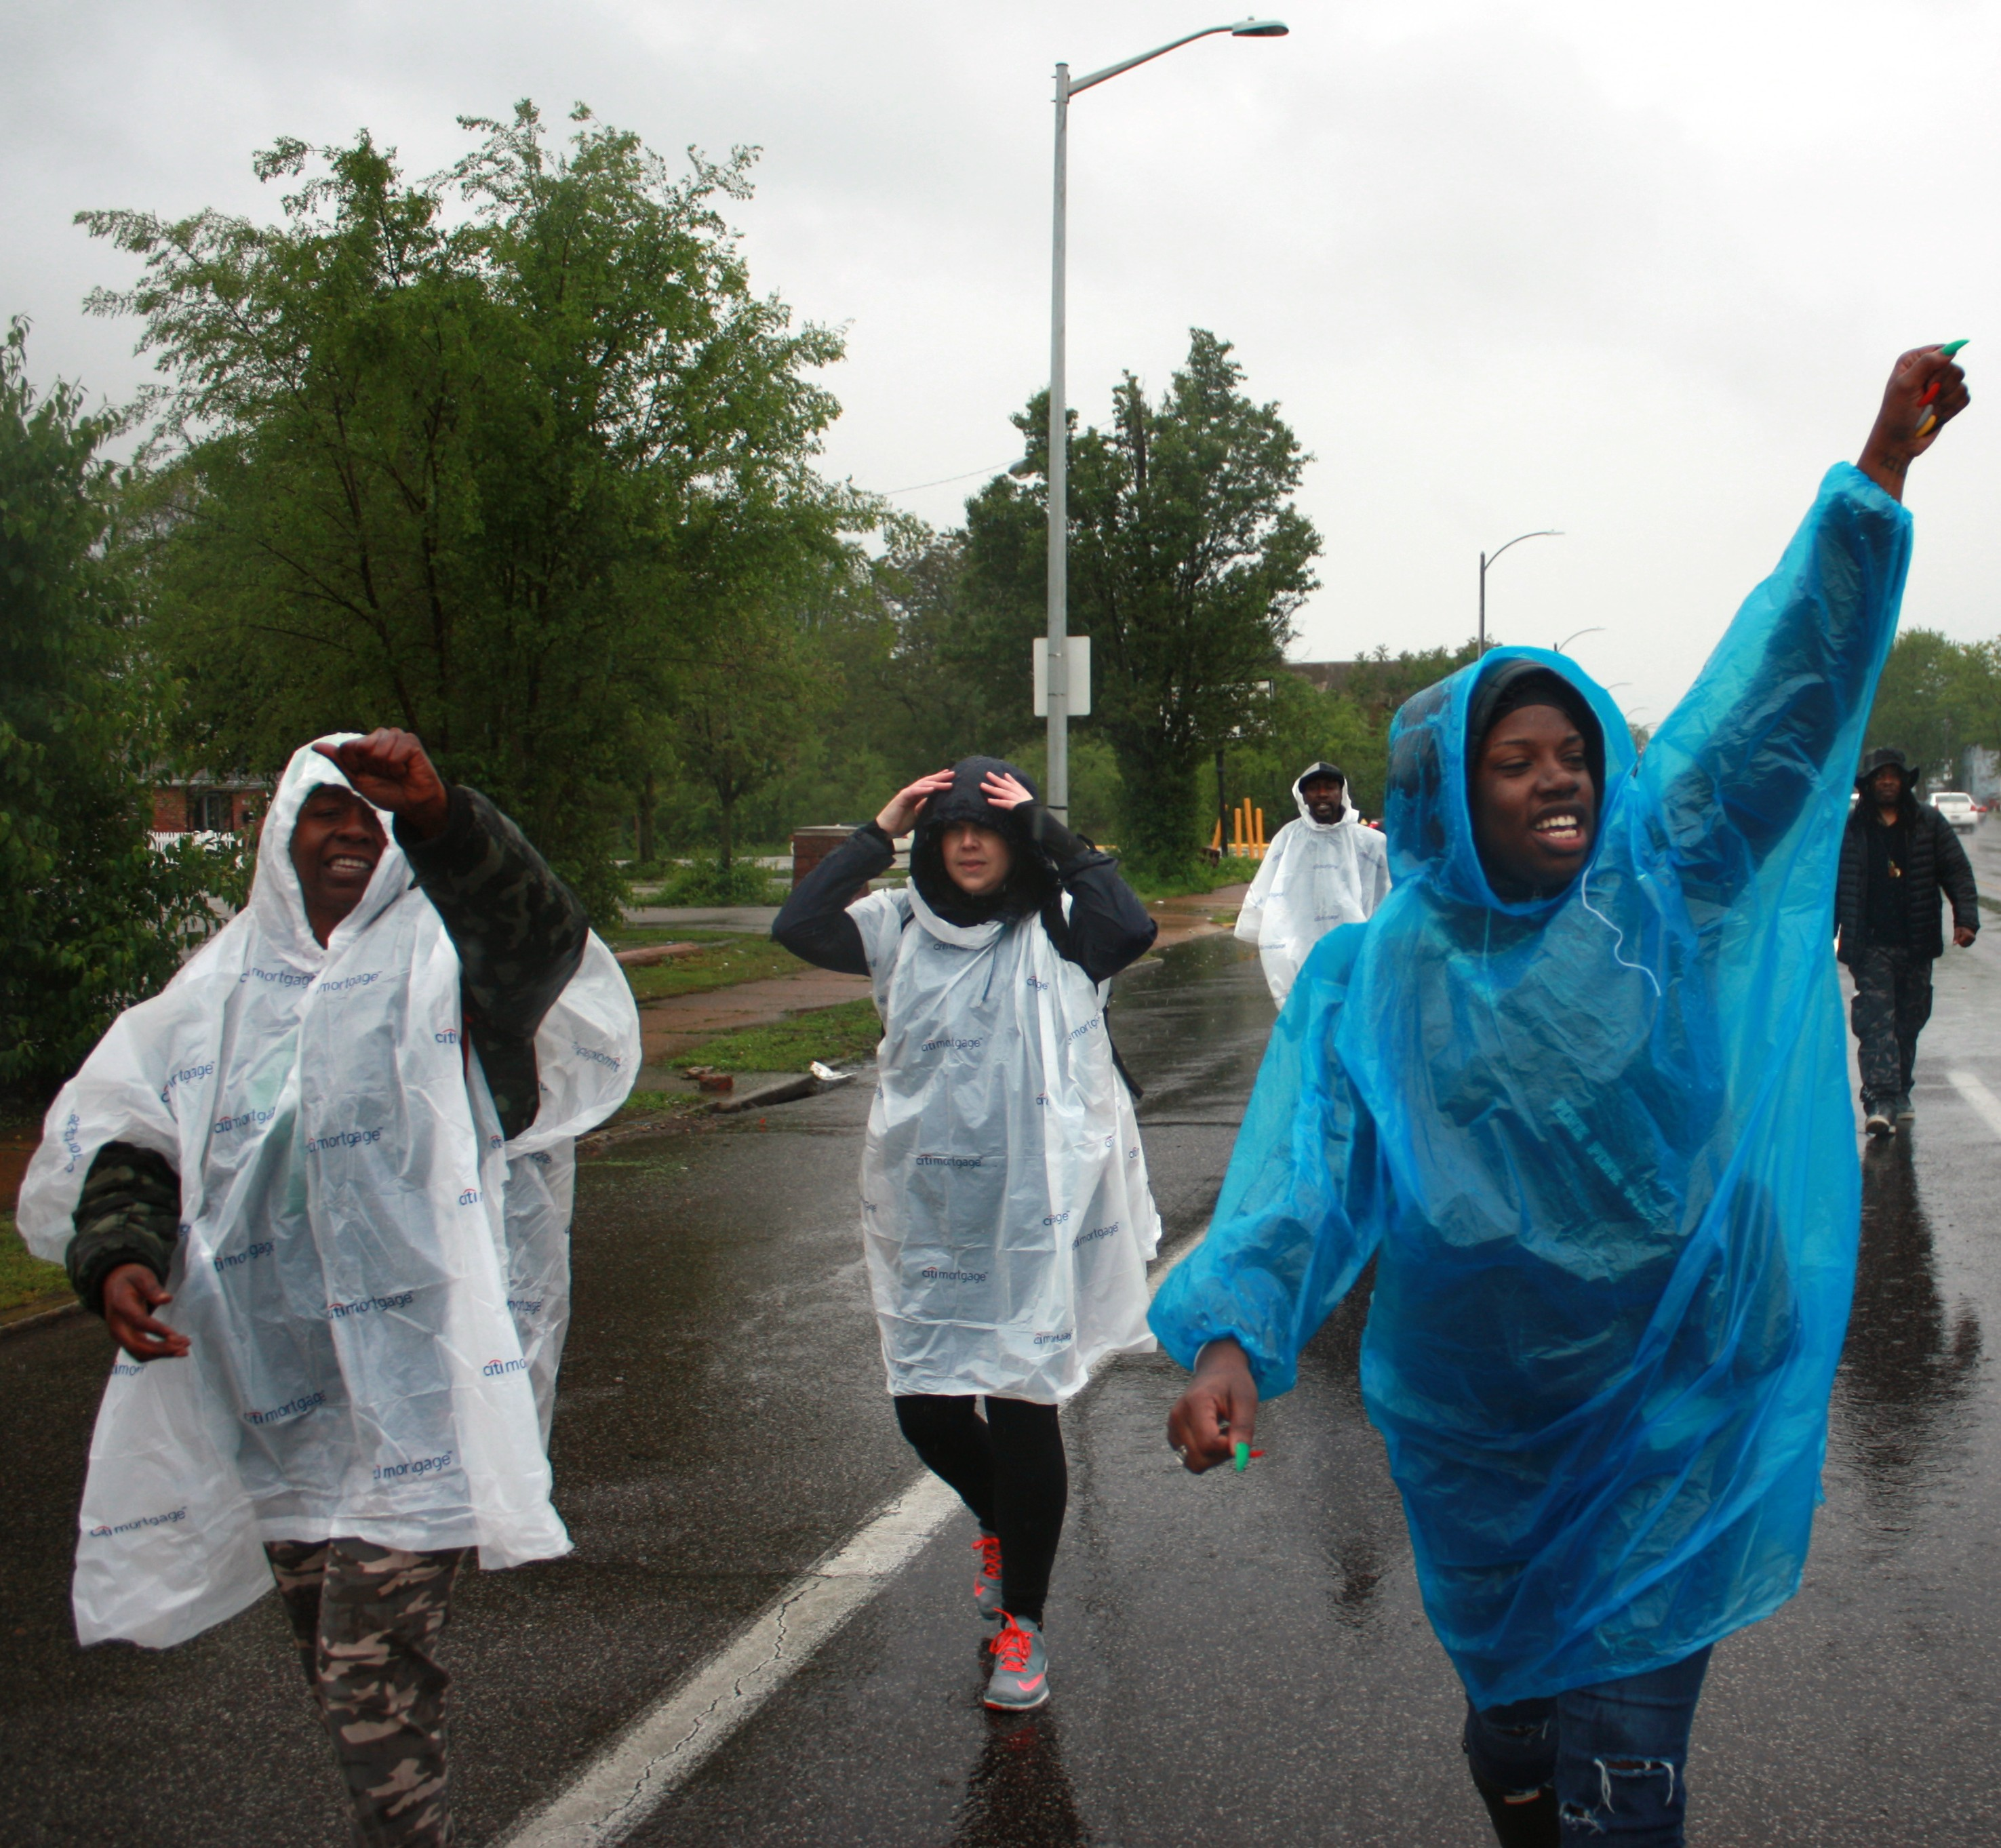 Recovered shooting victim leads march against gun violence